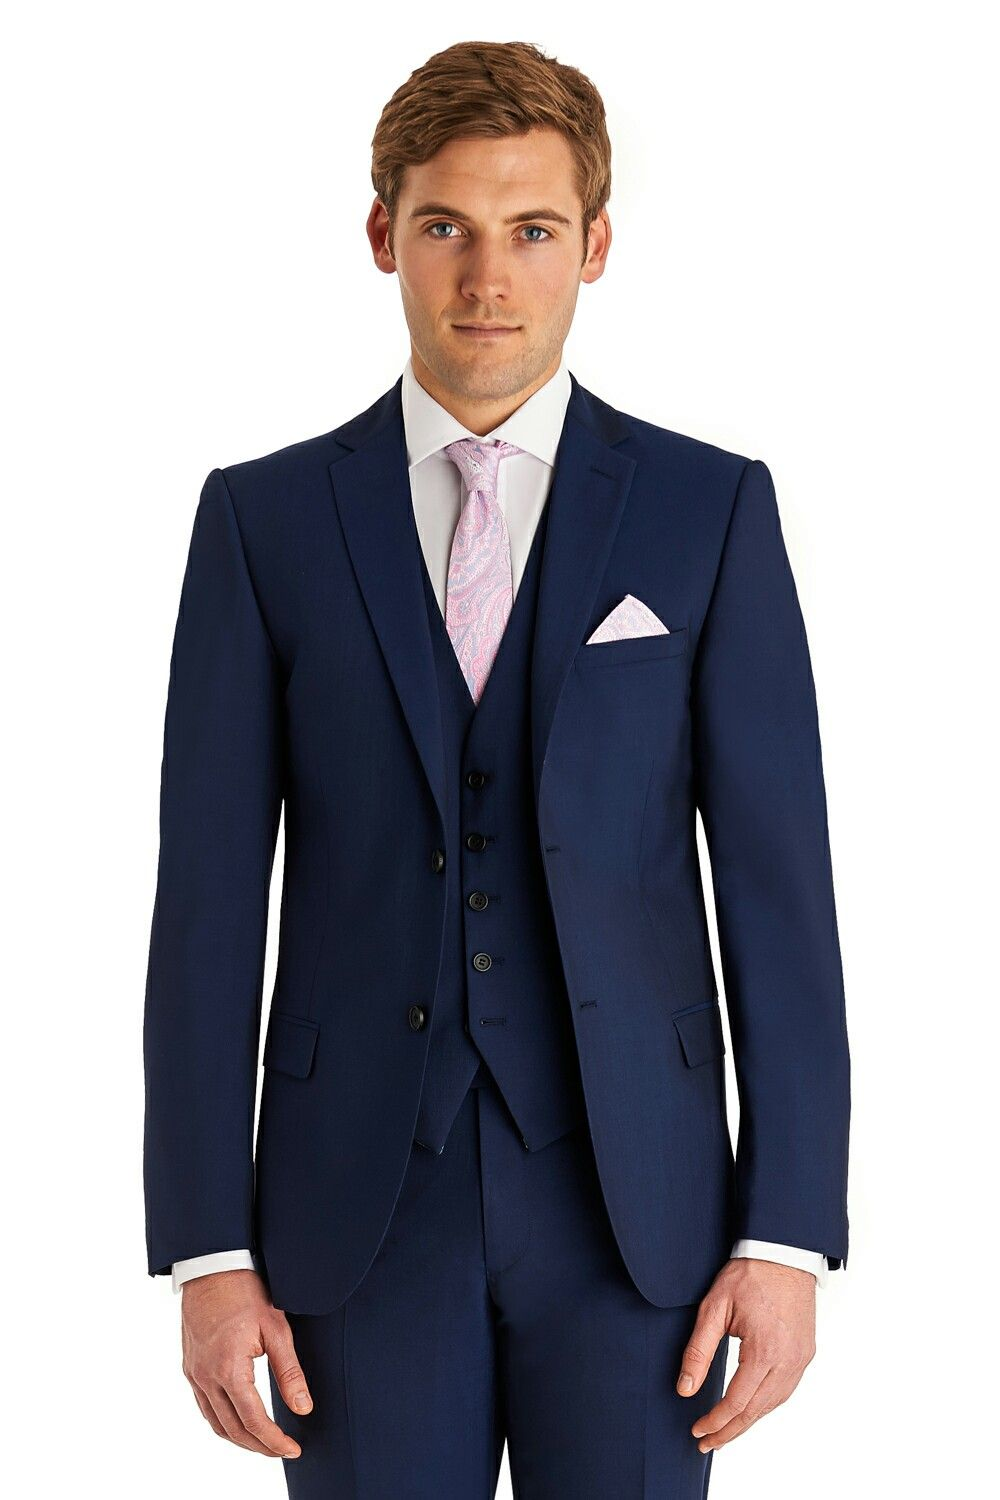 Ted Baker Lounge Lizard Hire Suit Exclusive To Moss Bros Pop In And See One